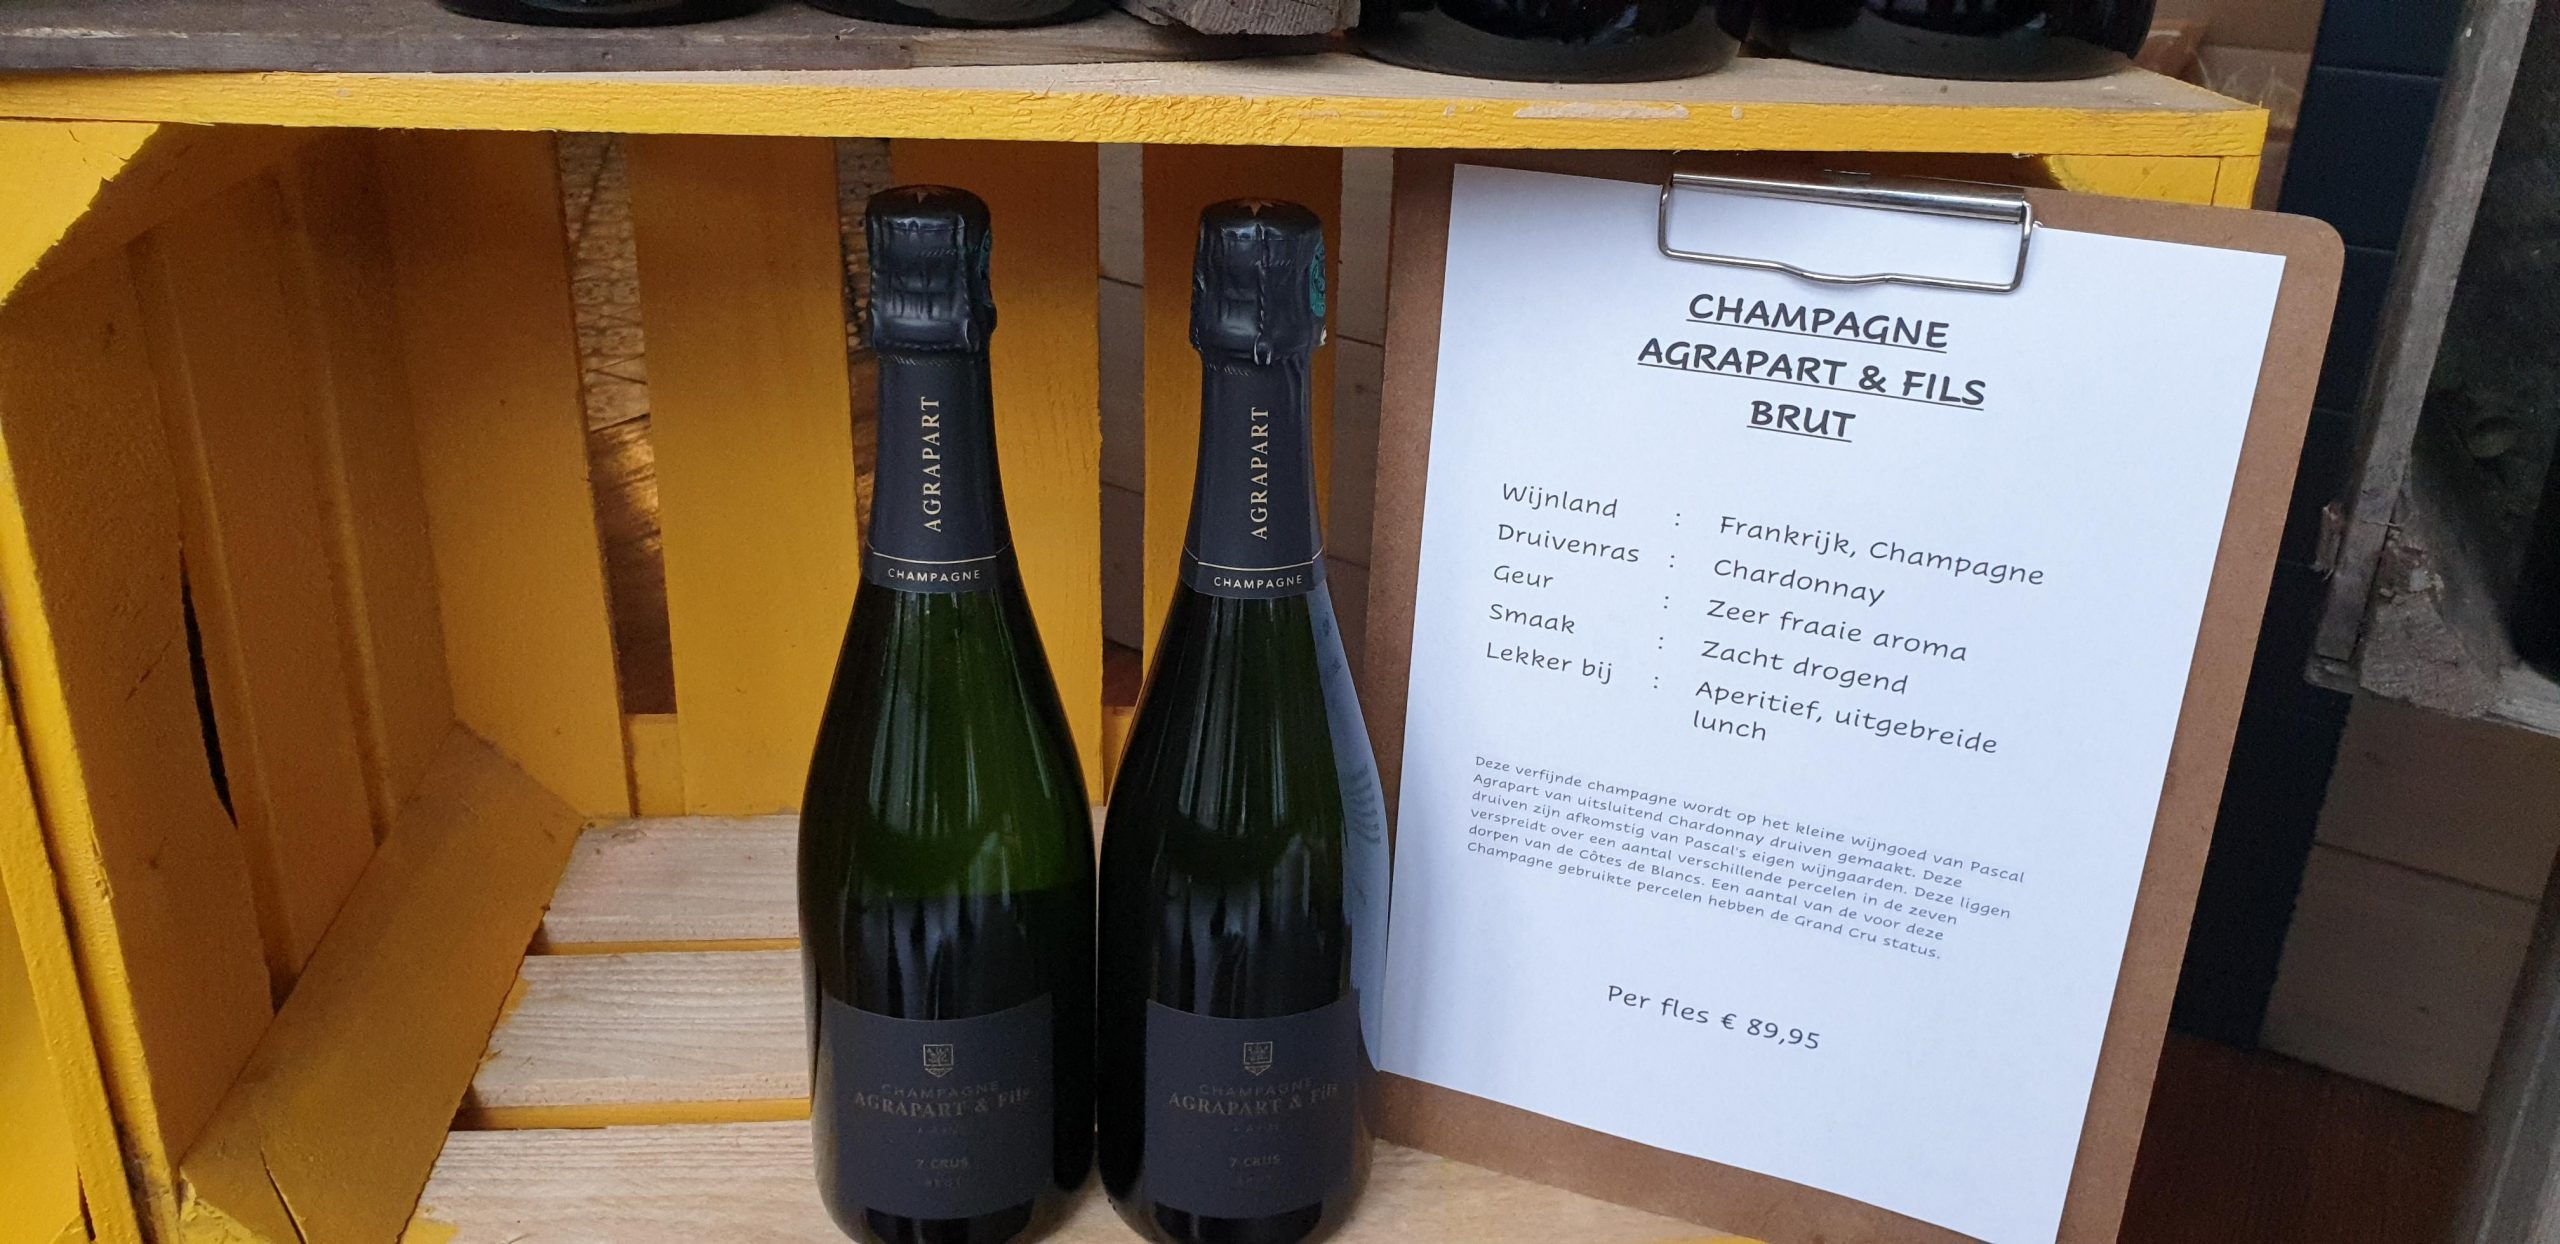 Champagne Agrapart & Fils Brut 1